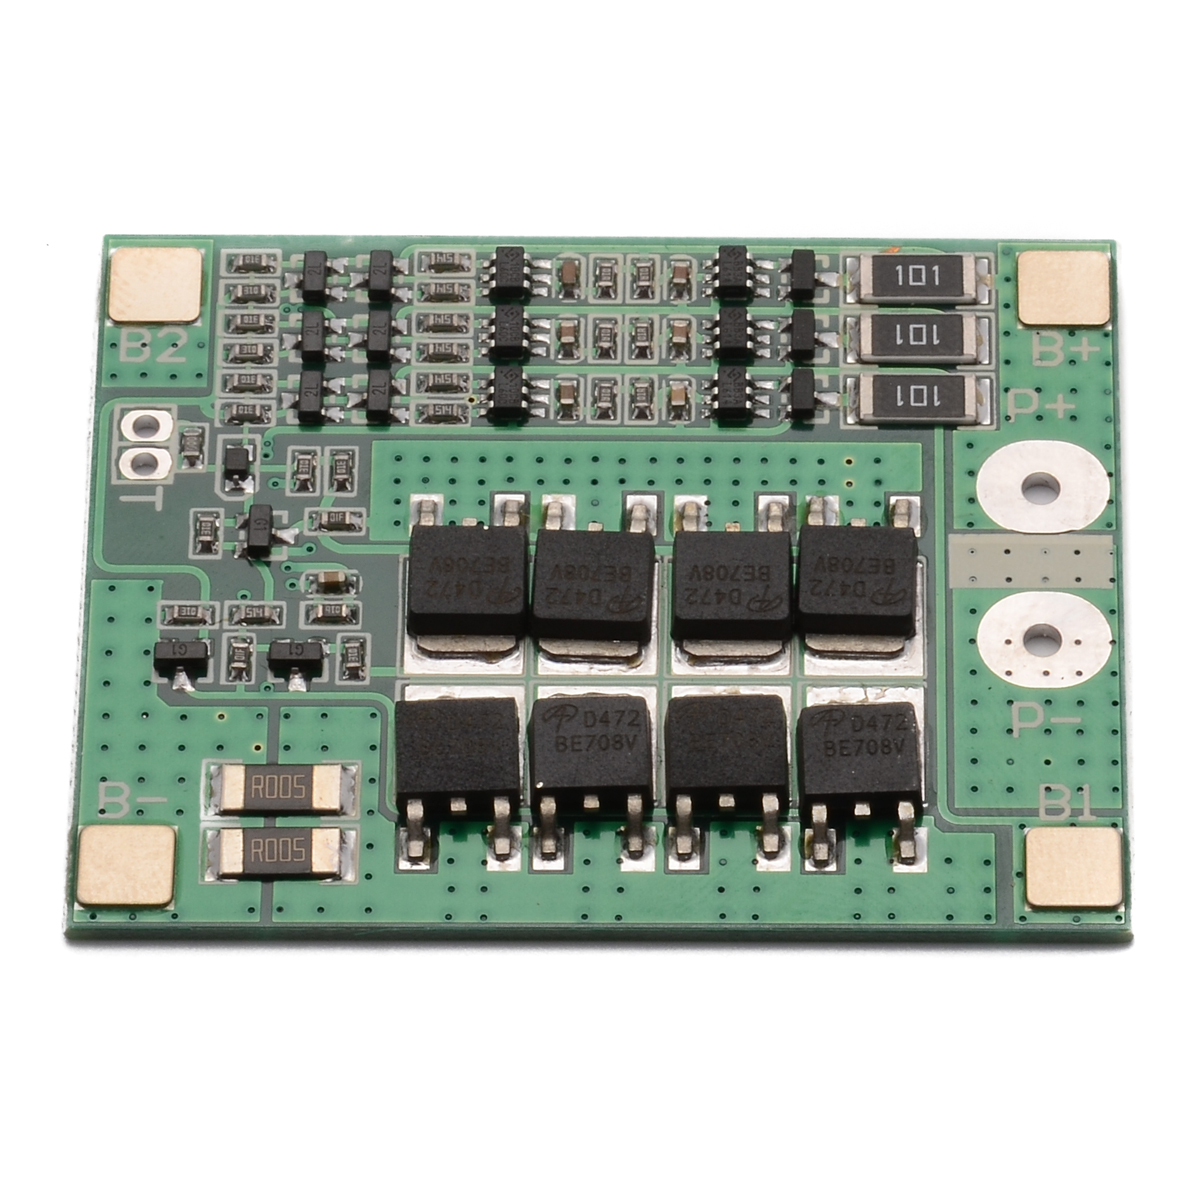 Li-ion Lithium Battery Charger Module BMS Protection Charging Board Electrical 3S 40A Protection Plate